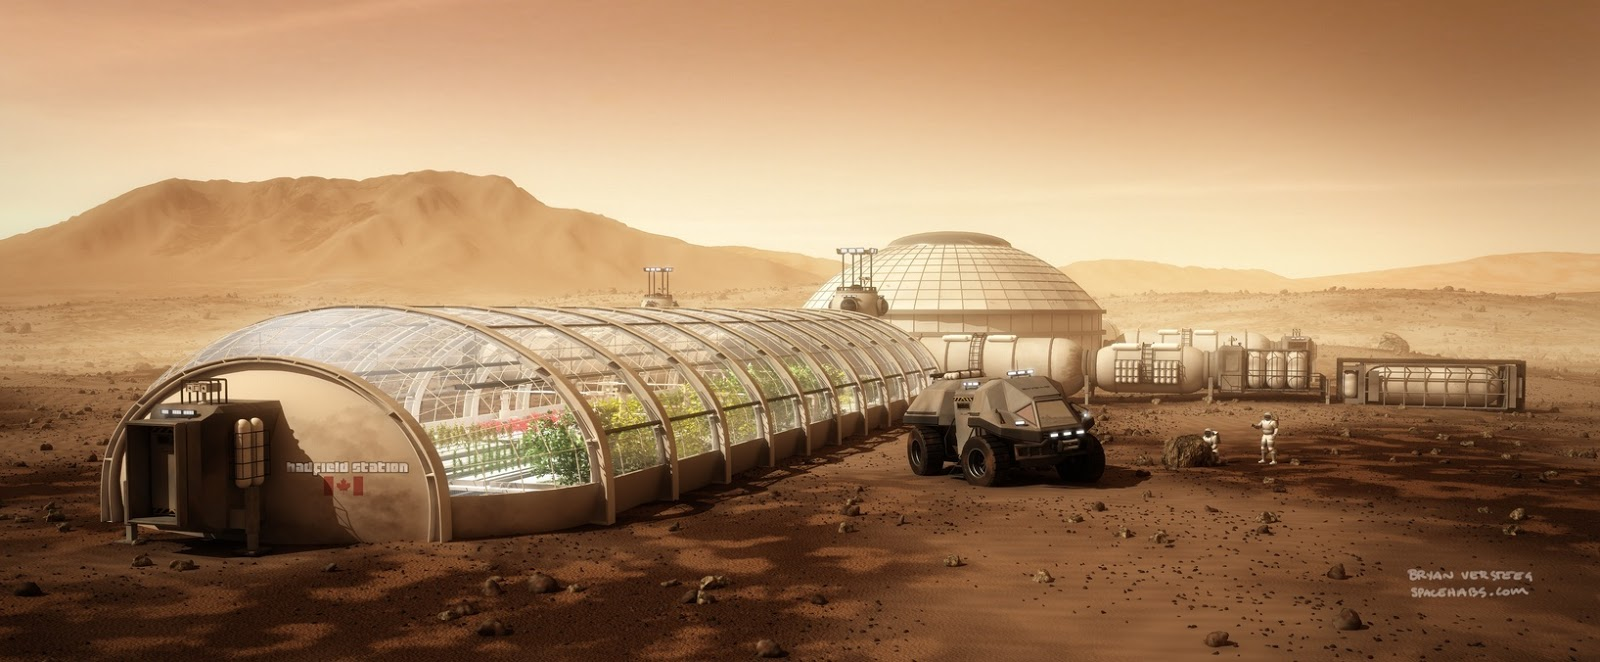 Mars Base by Bryan Versteeg